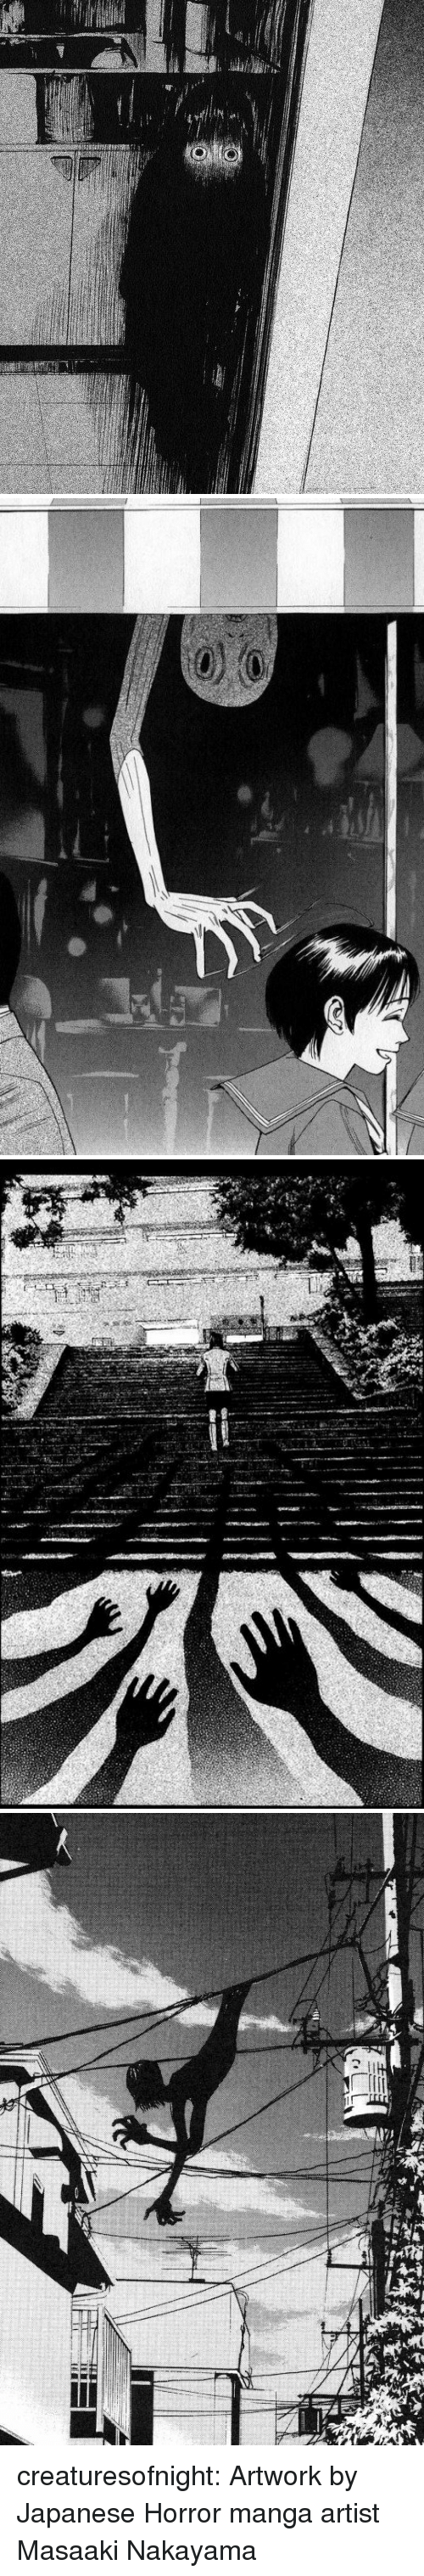 Tumblr, Blog, and Manga: creaturesofnight:  Artwork by Japanese Horror manga artist Masaaki Nakayama